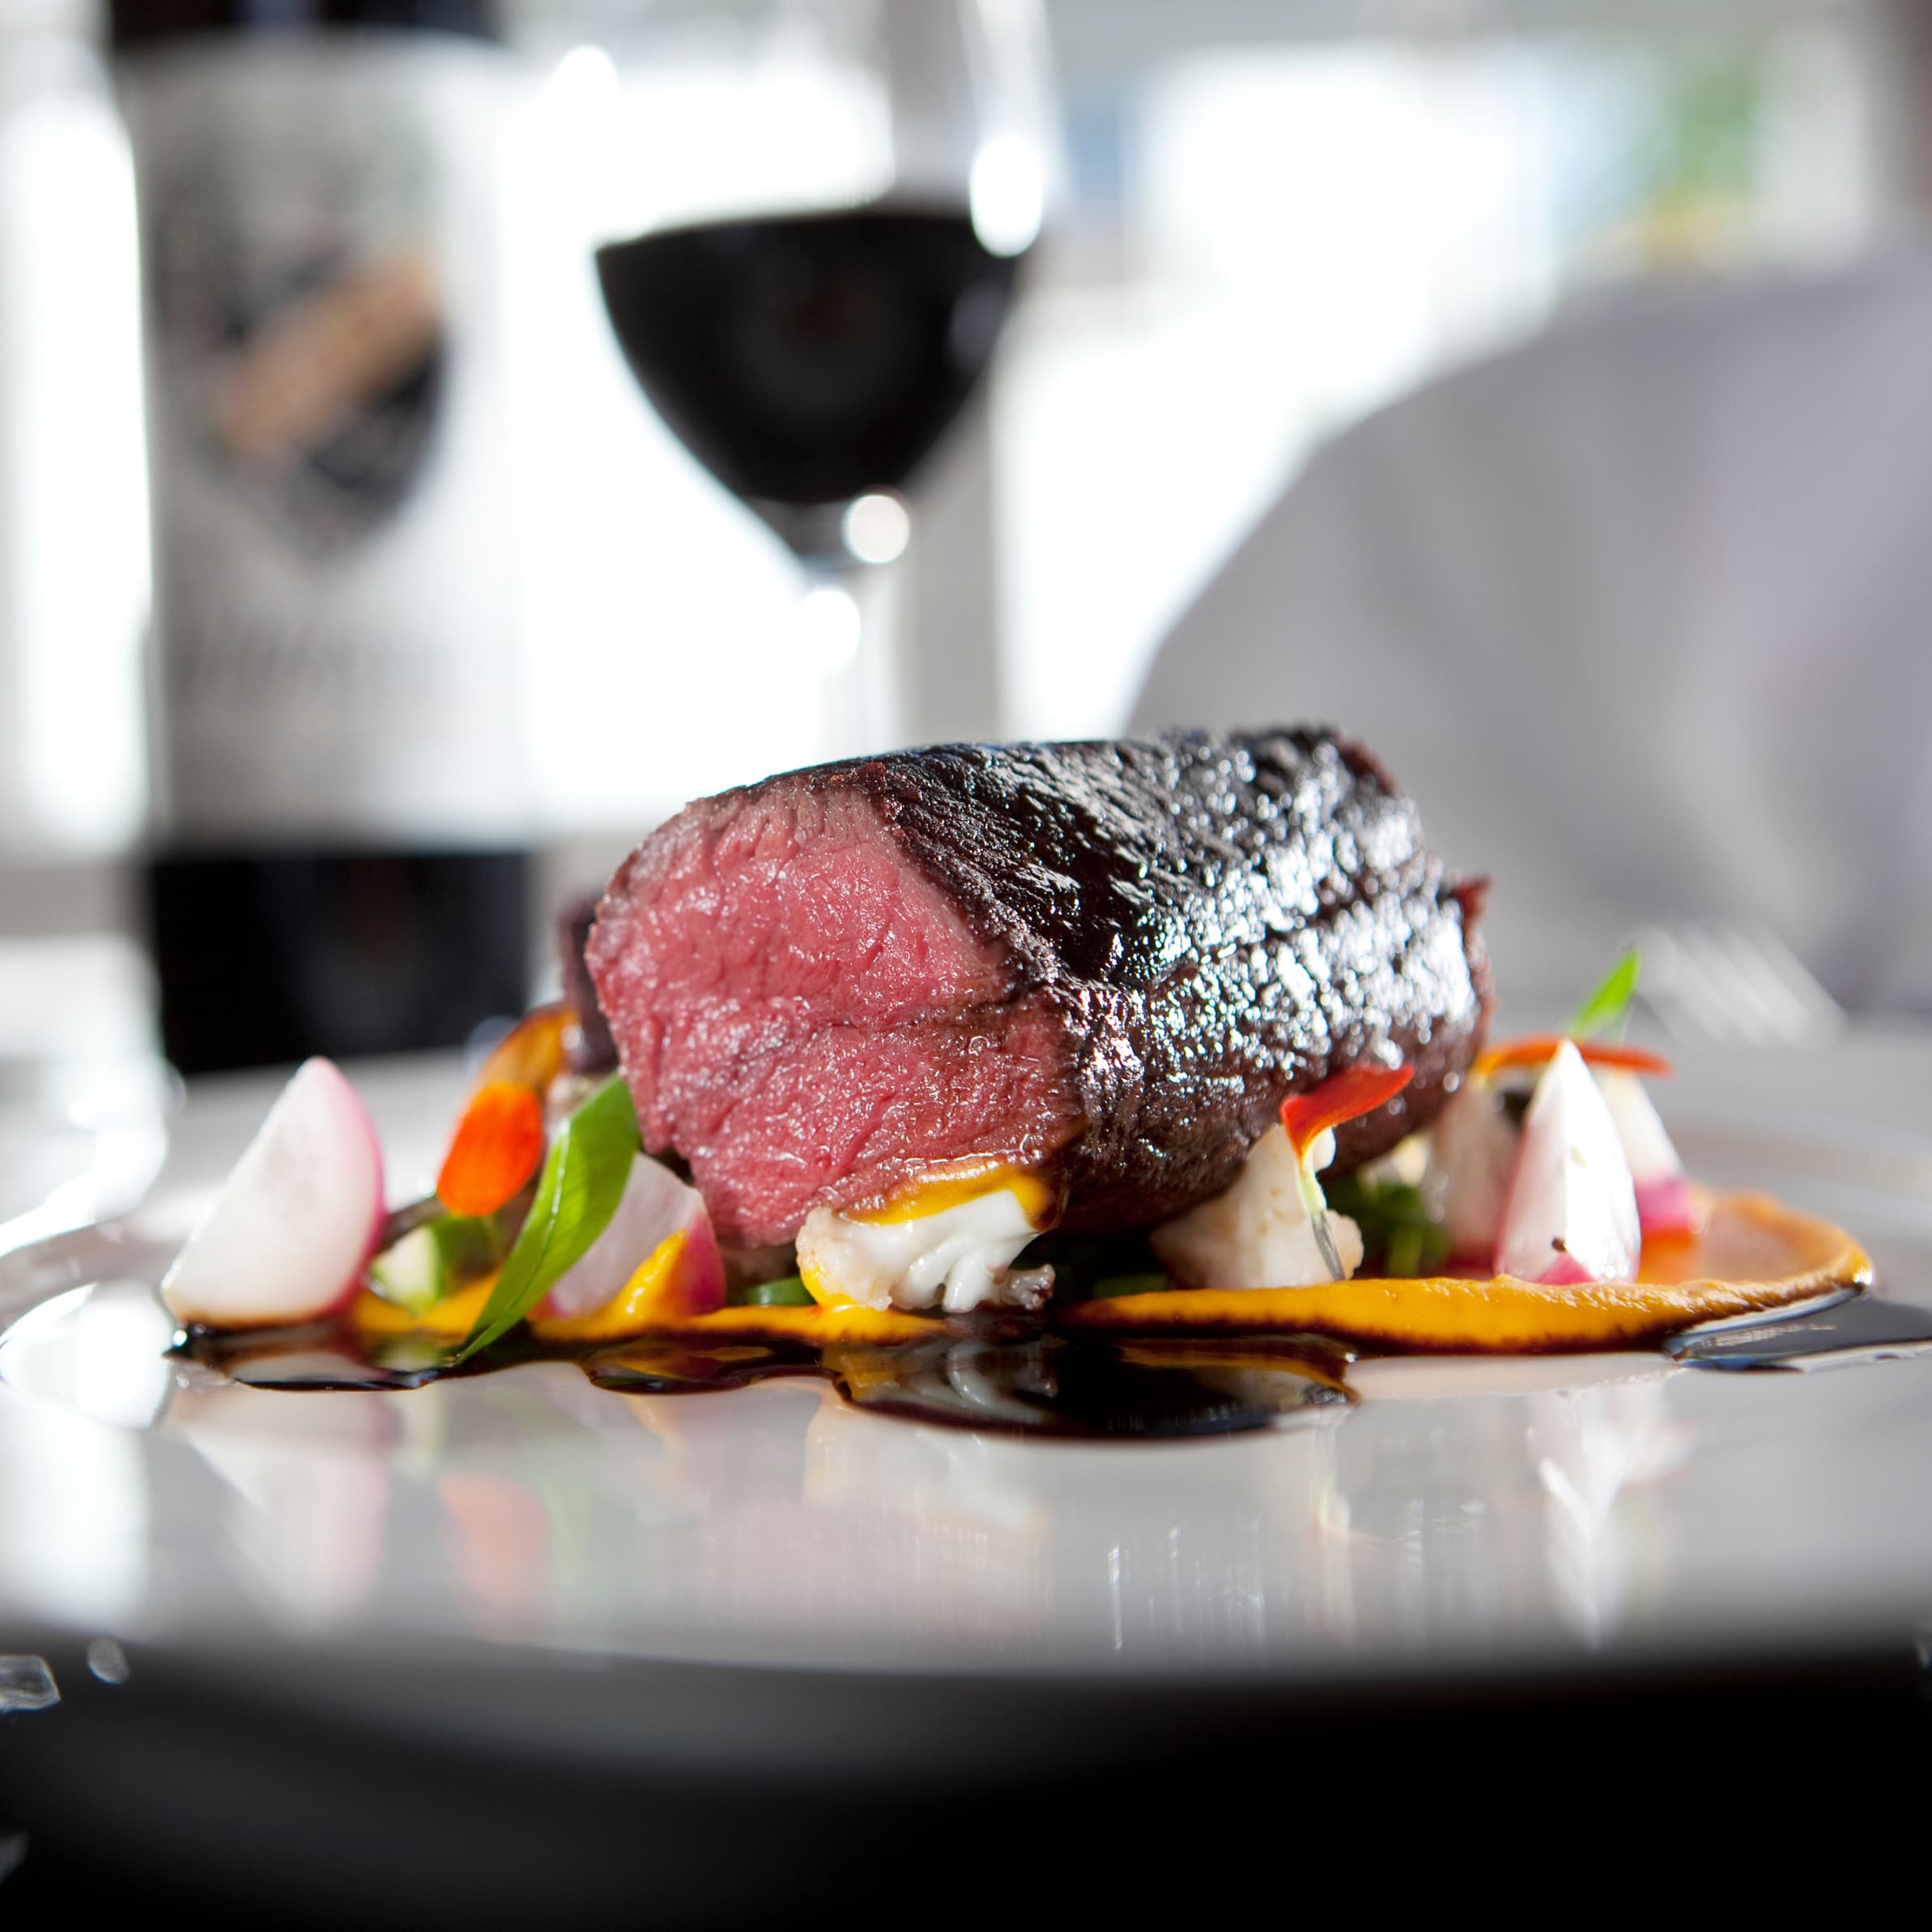 cook reindeer filet on a table with vegetables and a glass of wine